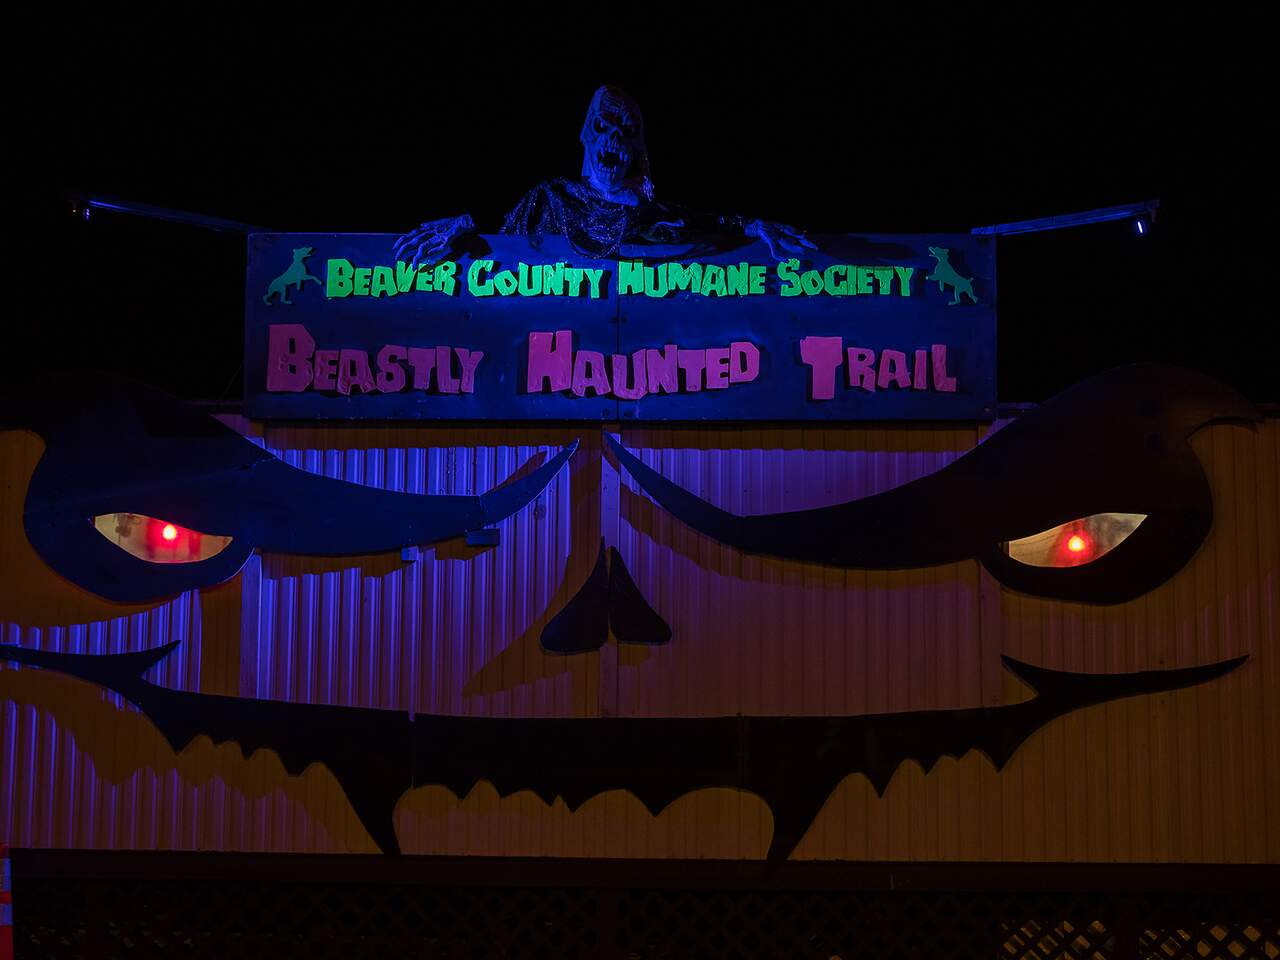 Beastly Haunted trail